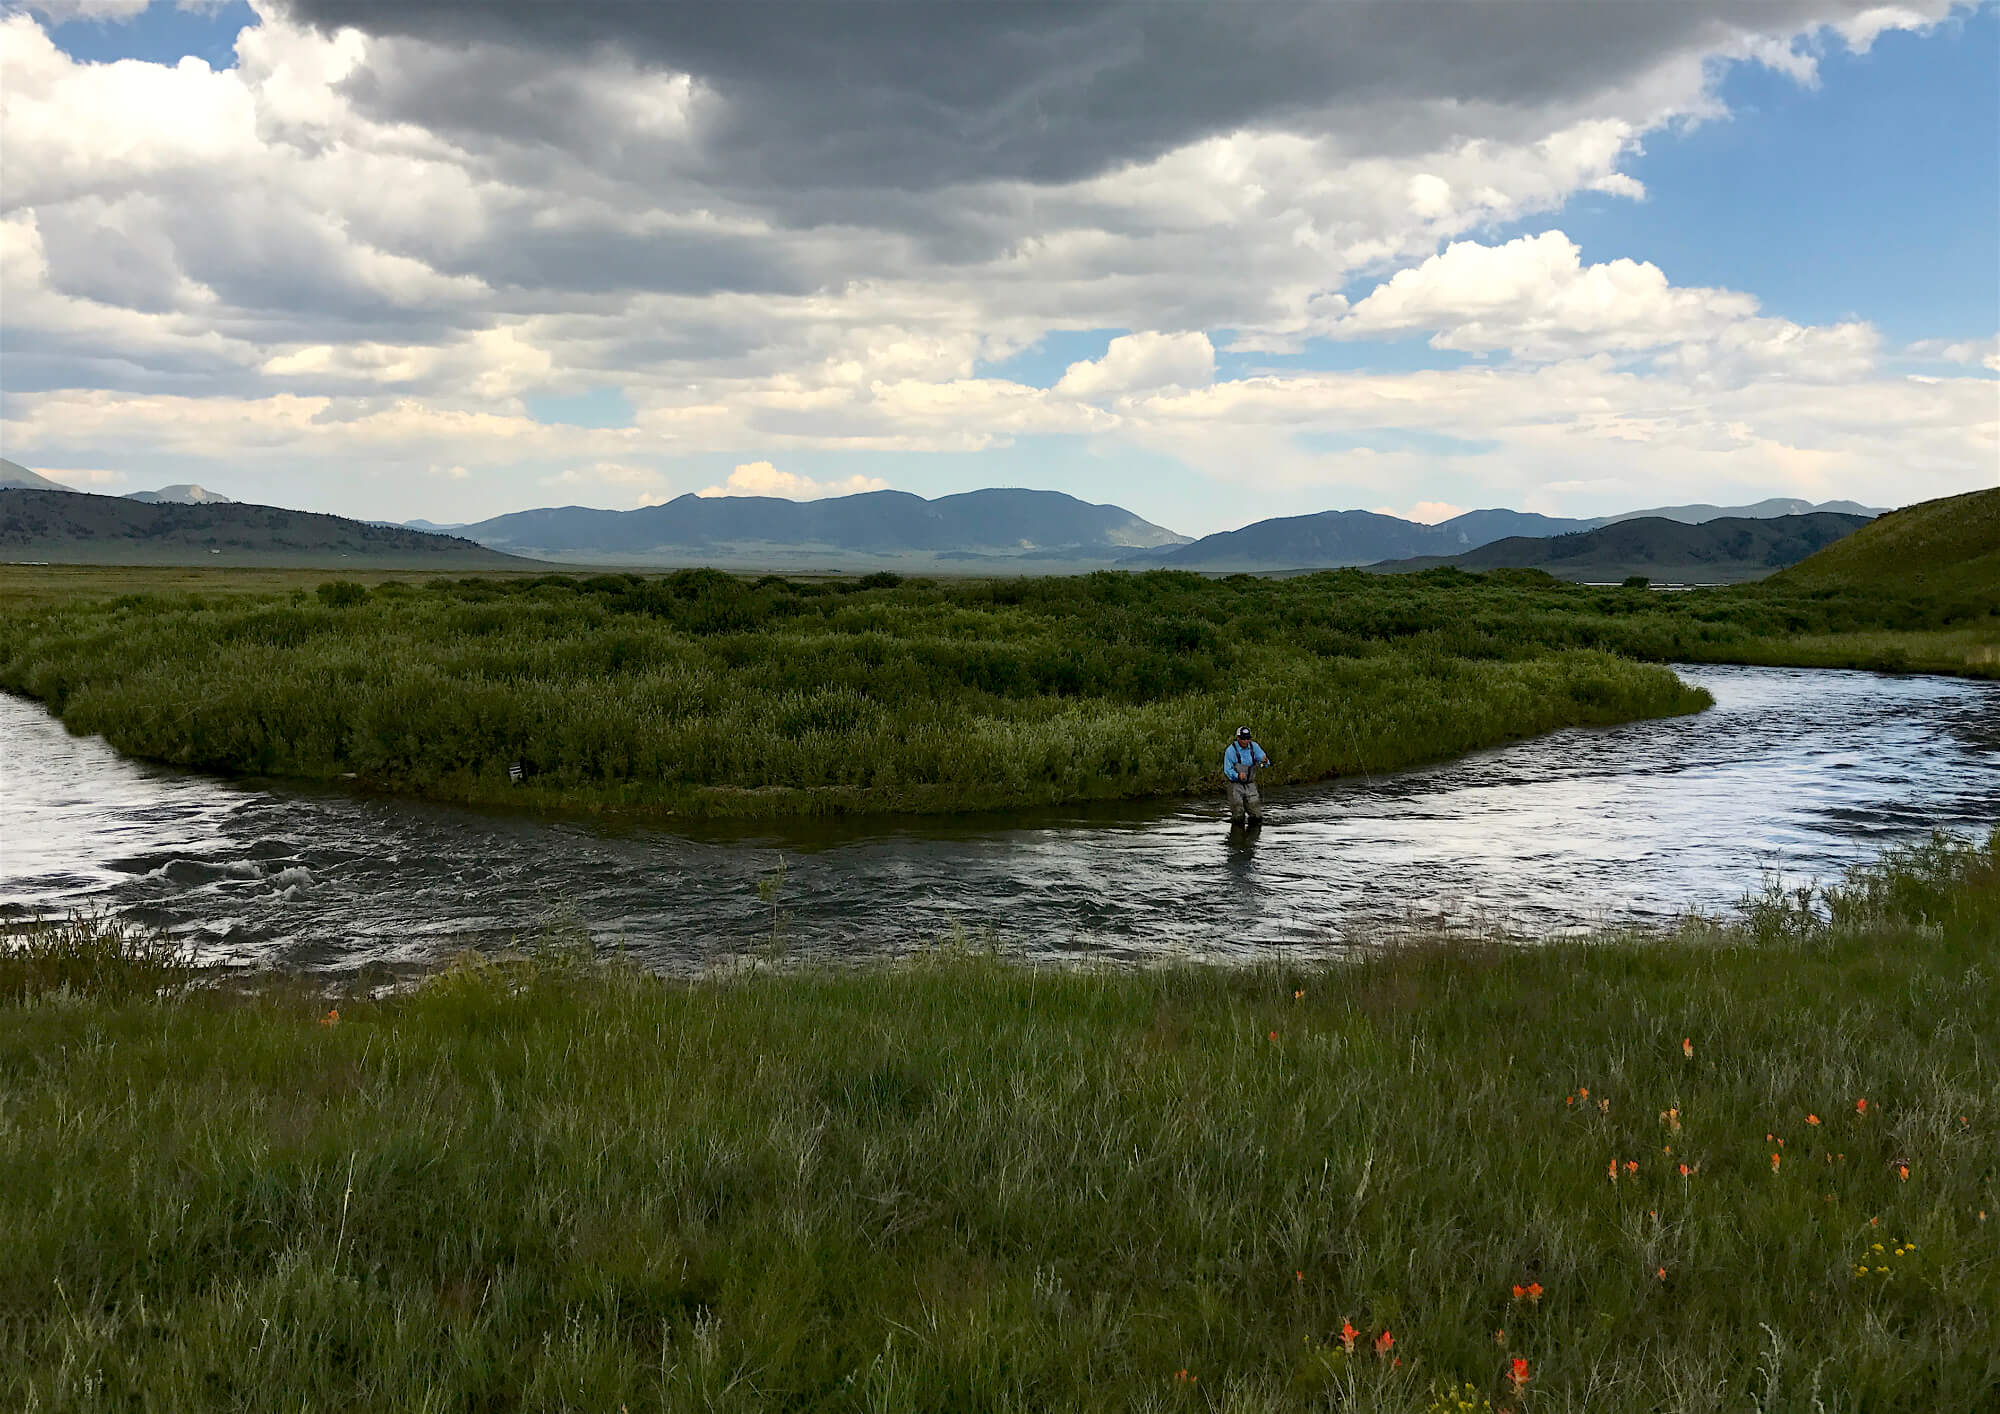 A fisherman wades into the South Platte with the Rocky Mountains in the background.